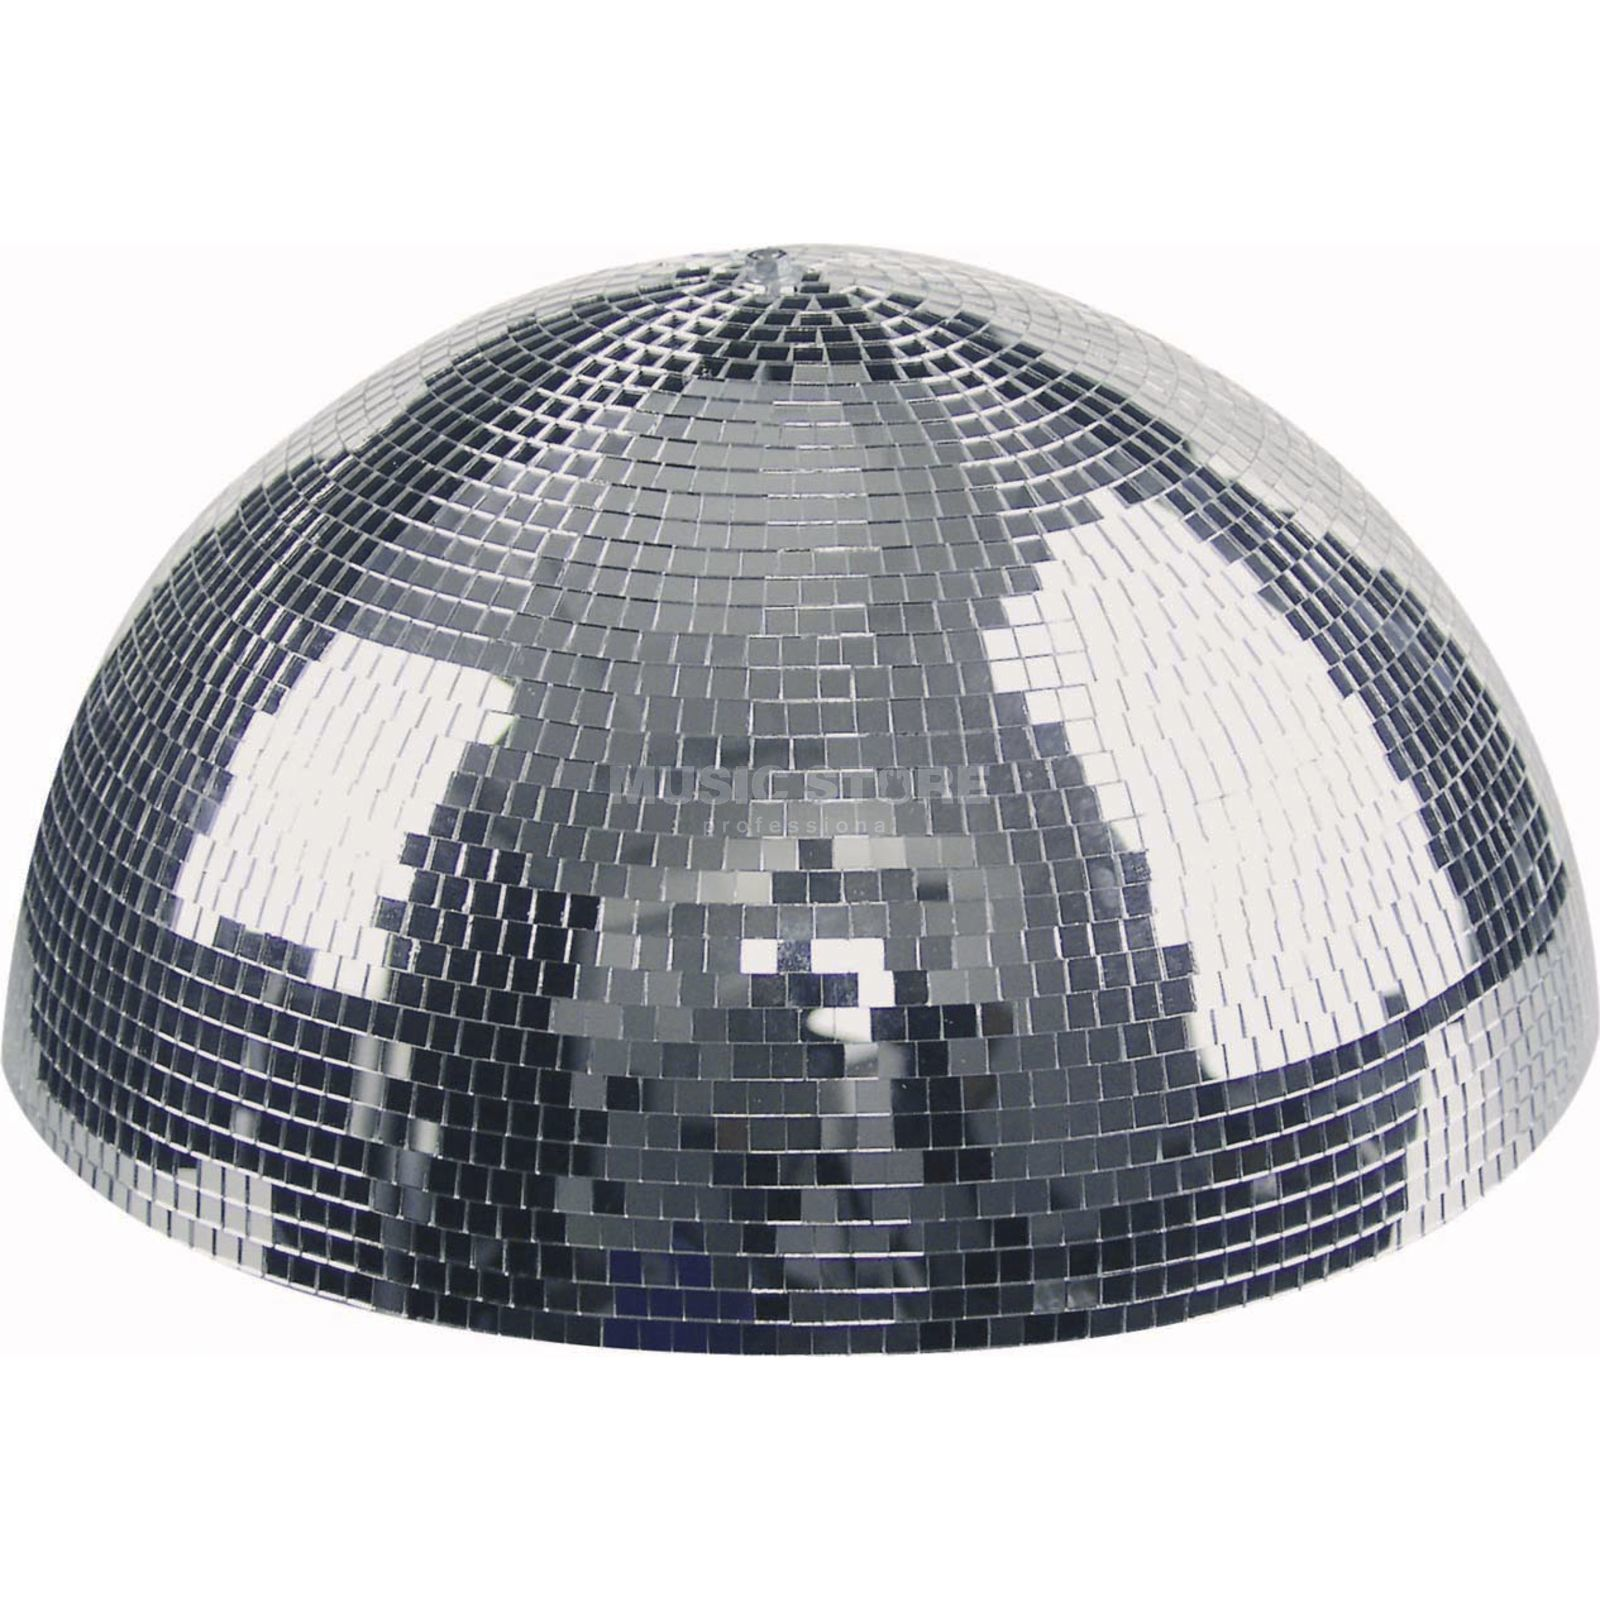 lightmaXX Half Mirror Ball 40cm Incl. Engine and suspension Product Image